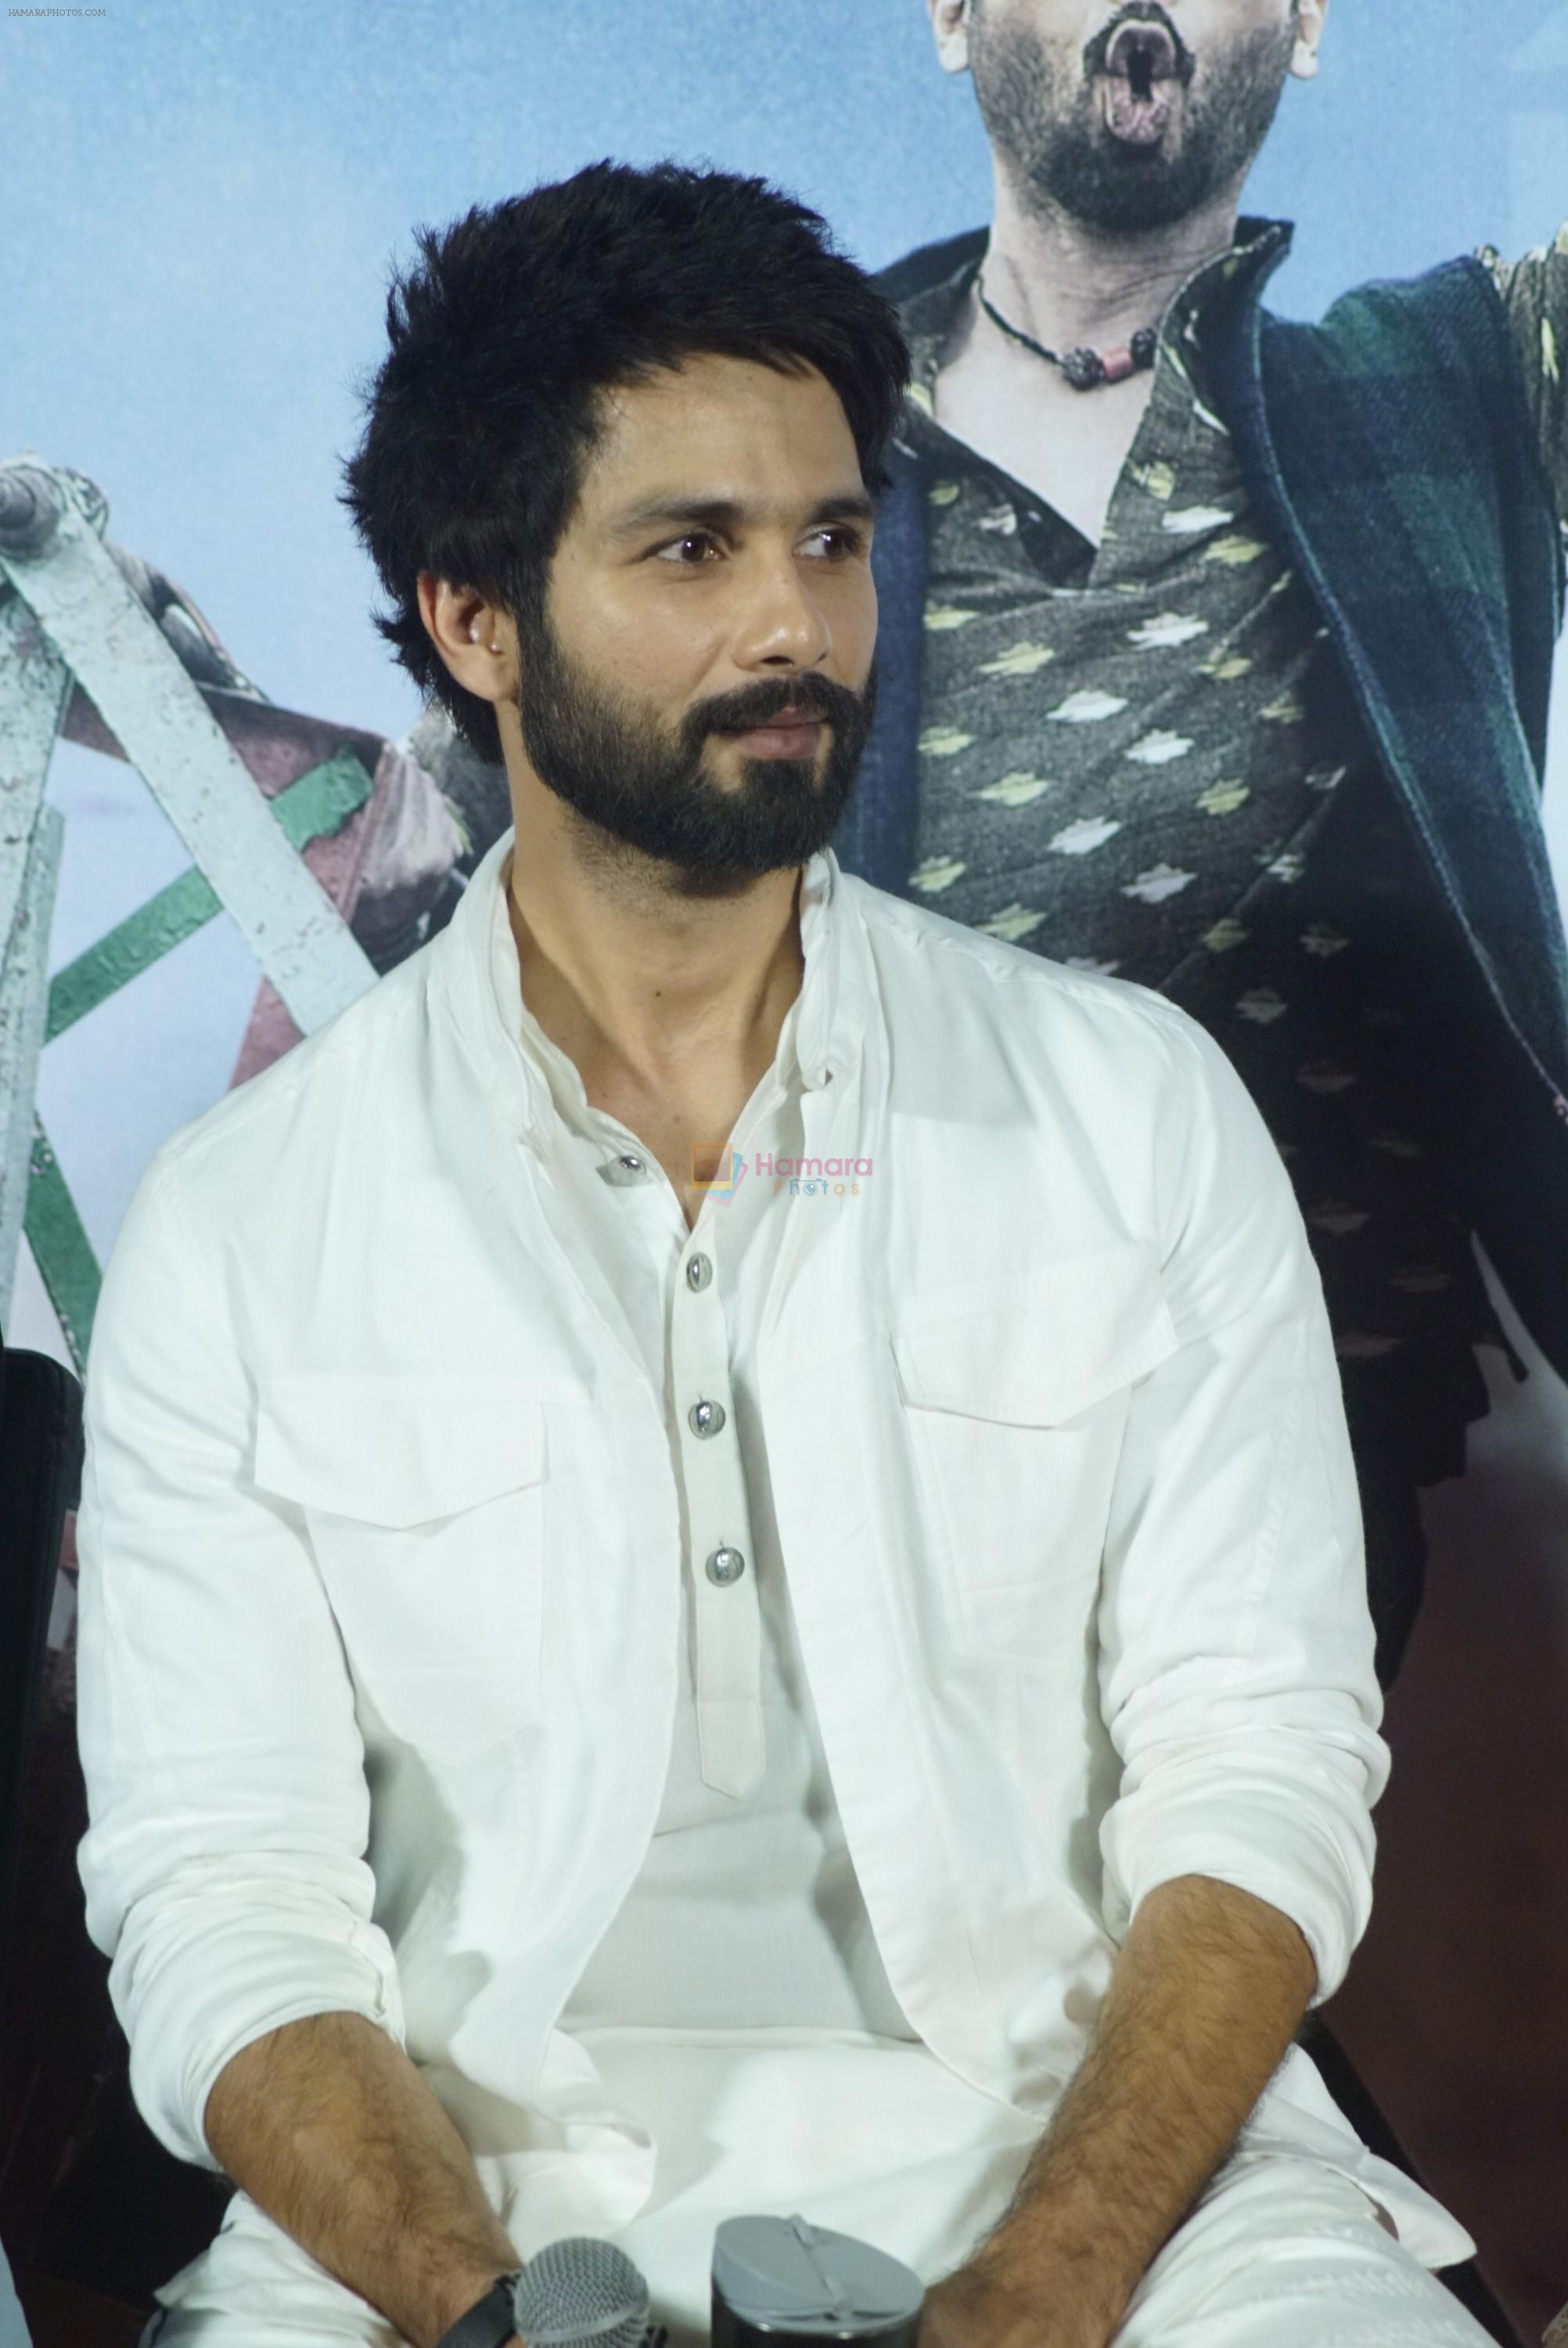 Shahid Kapoor at the trailer launch of film Batti Gul Meter Chalu on 10th Aug 2018